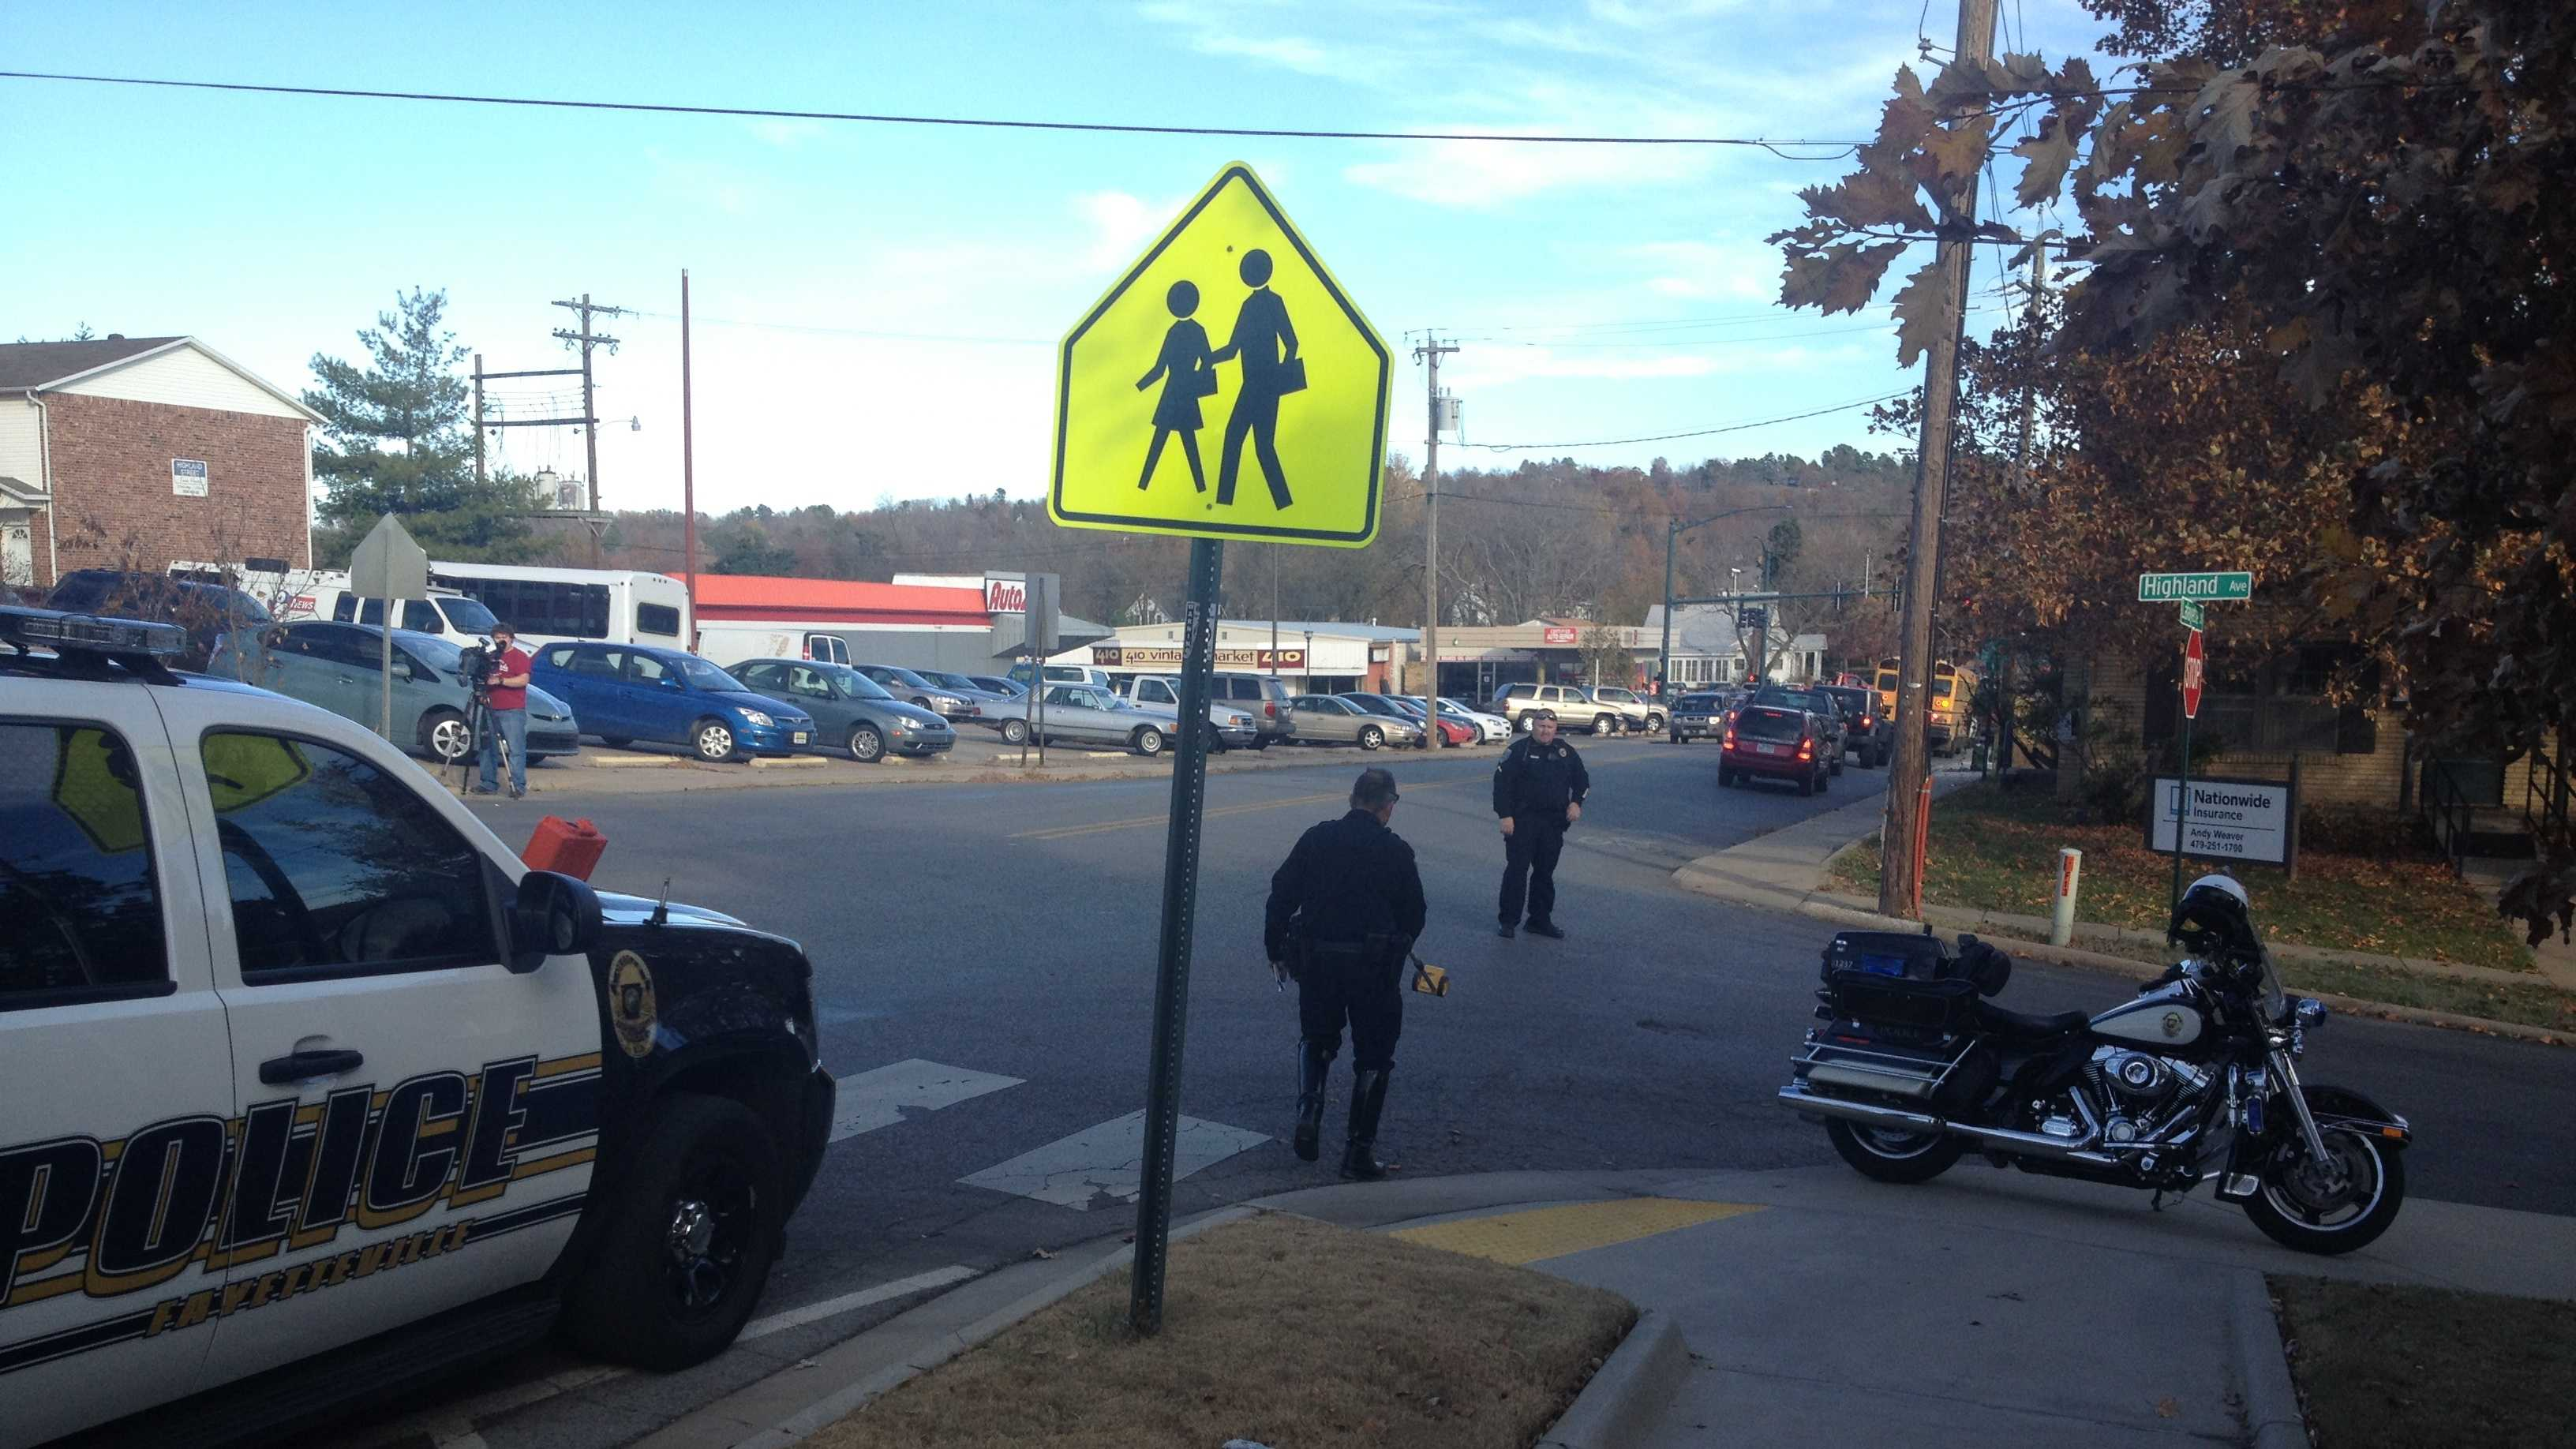 fayetteville ped ax pic